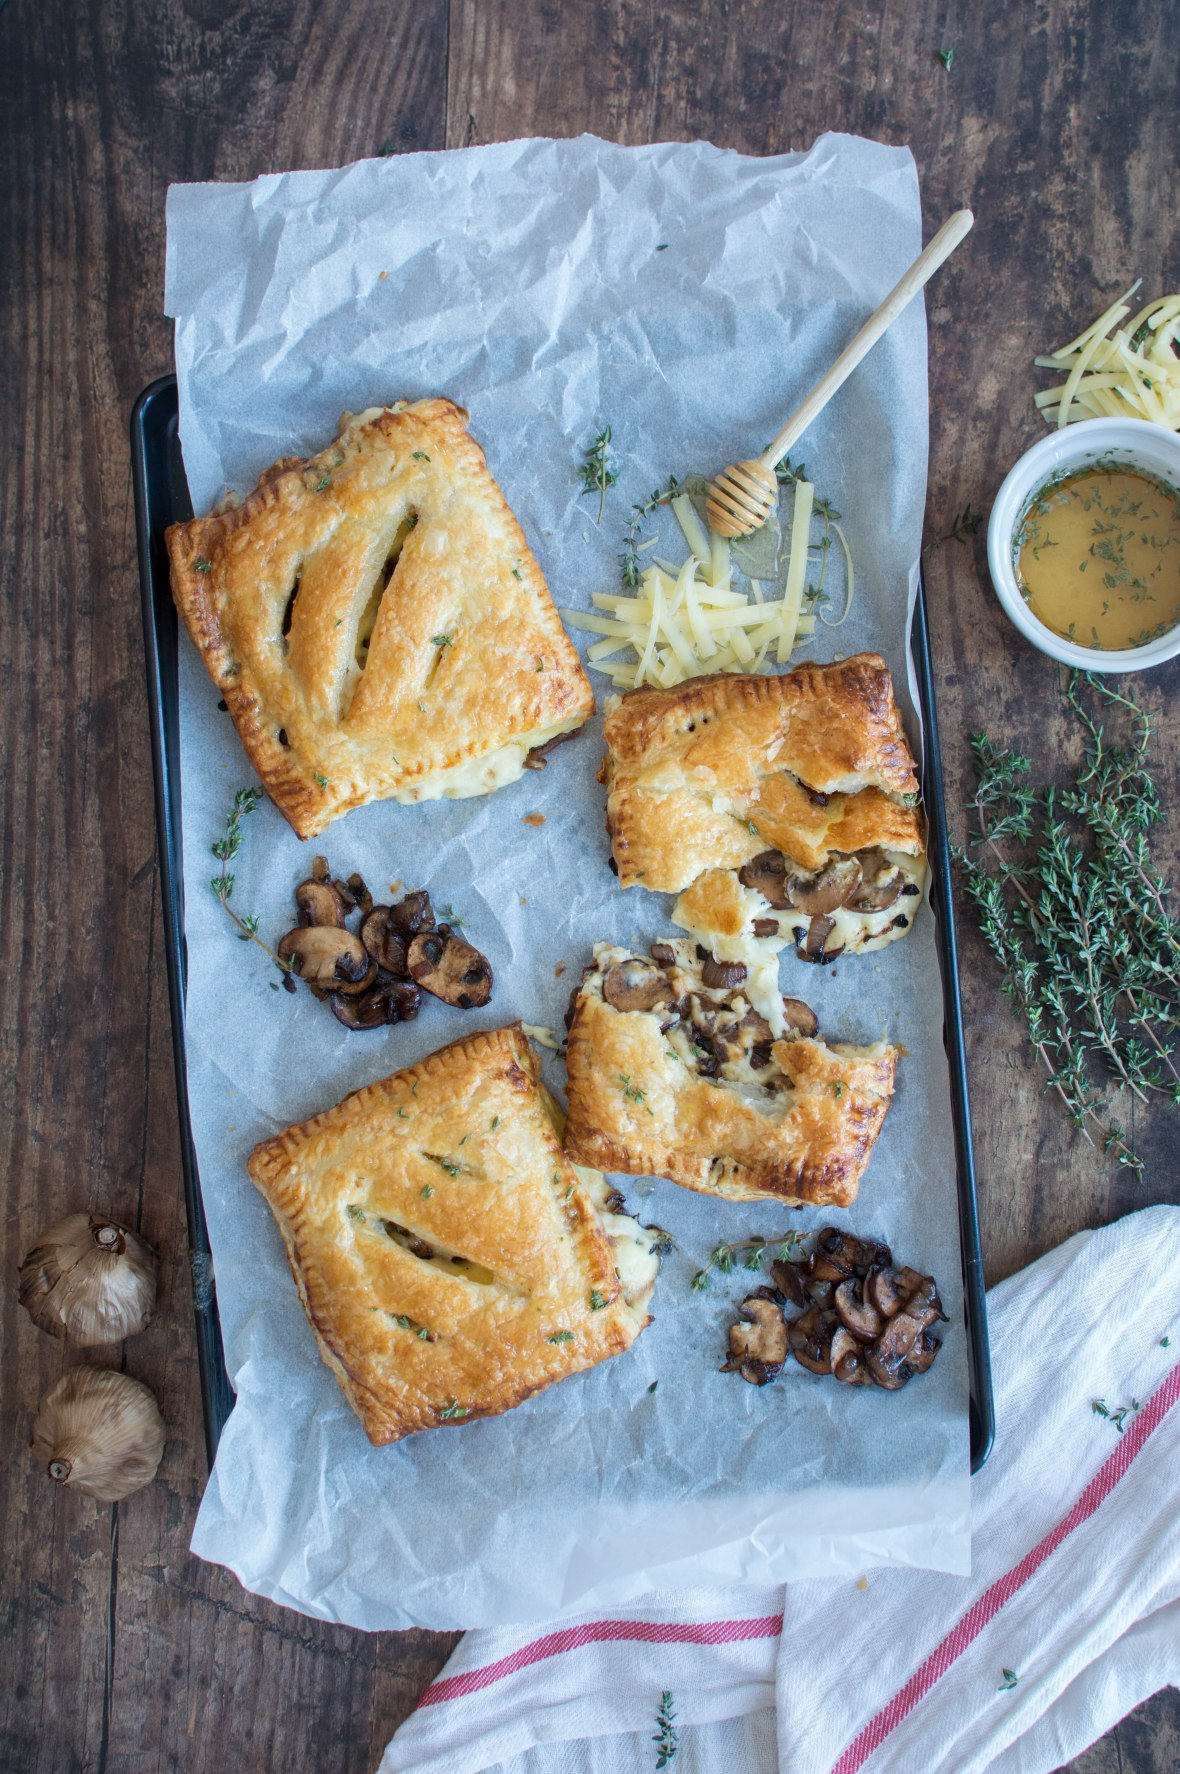 Recipe For Black Garlic, Mushroom & Cheddar Pasties With Salted Thyme Honey Drizzle - Kay's Kitchen